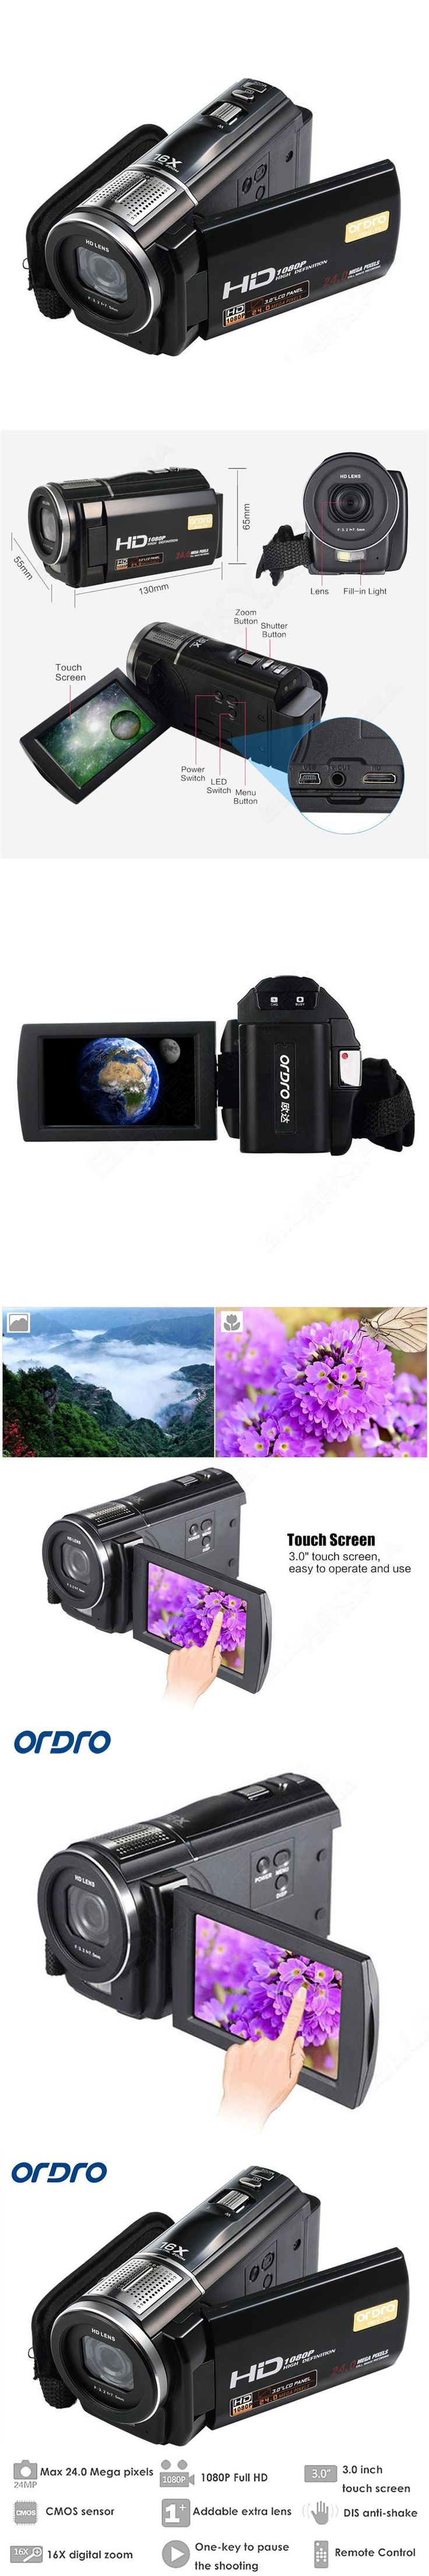 "ORDRO HDV-F5 Video Camera Full HD Camcorder 1080P 3.0"" Rotatable LCD Touch Screen Camcorders 16X Zoom Digital Camcorder DVR"